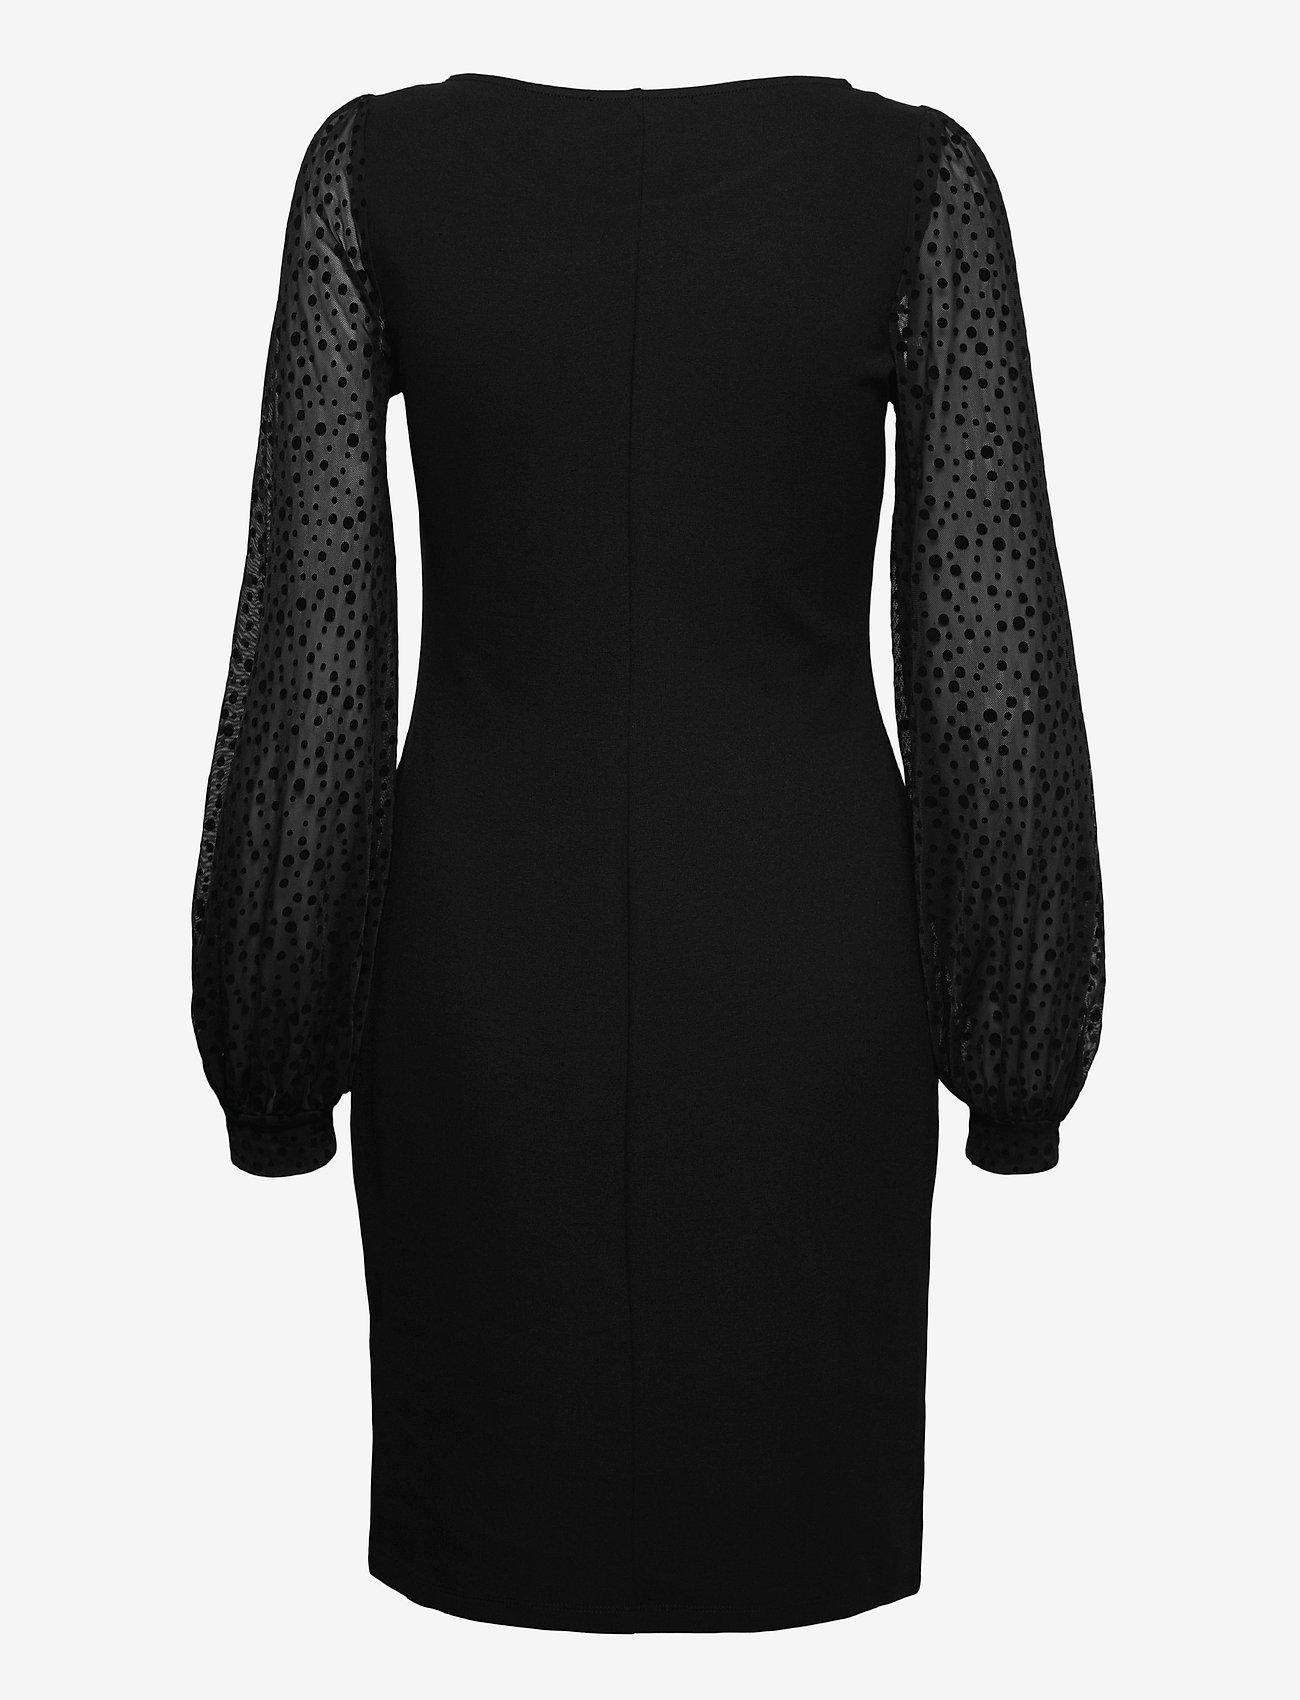 Dresses Knitted (Black) (59.99 €) - Esprit Casual dCc4K